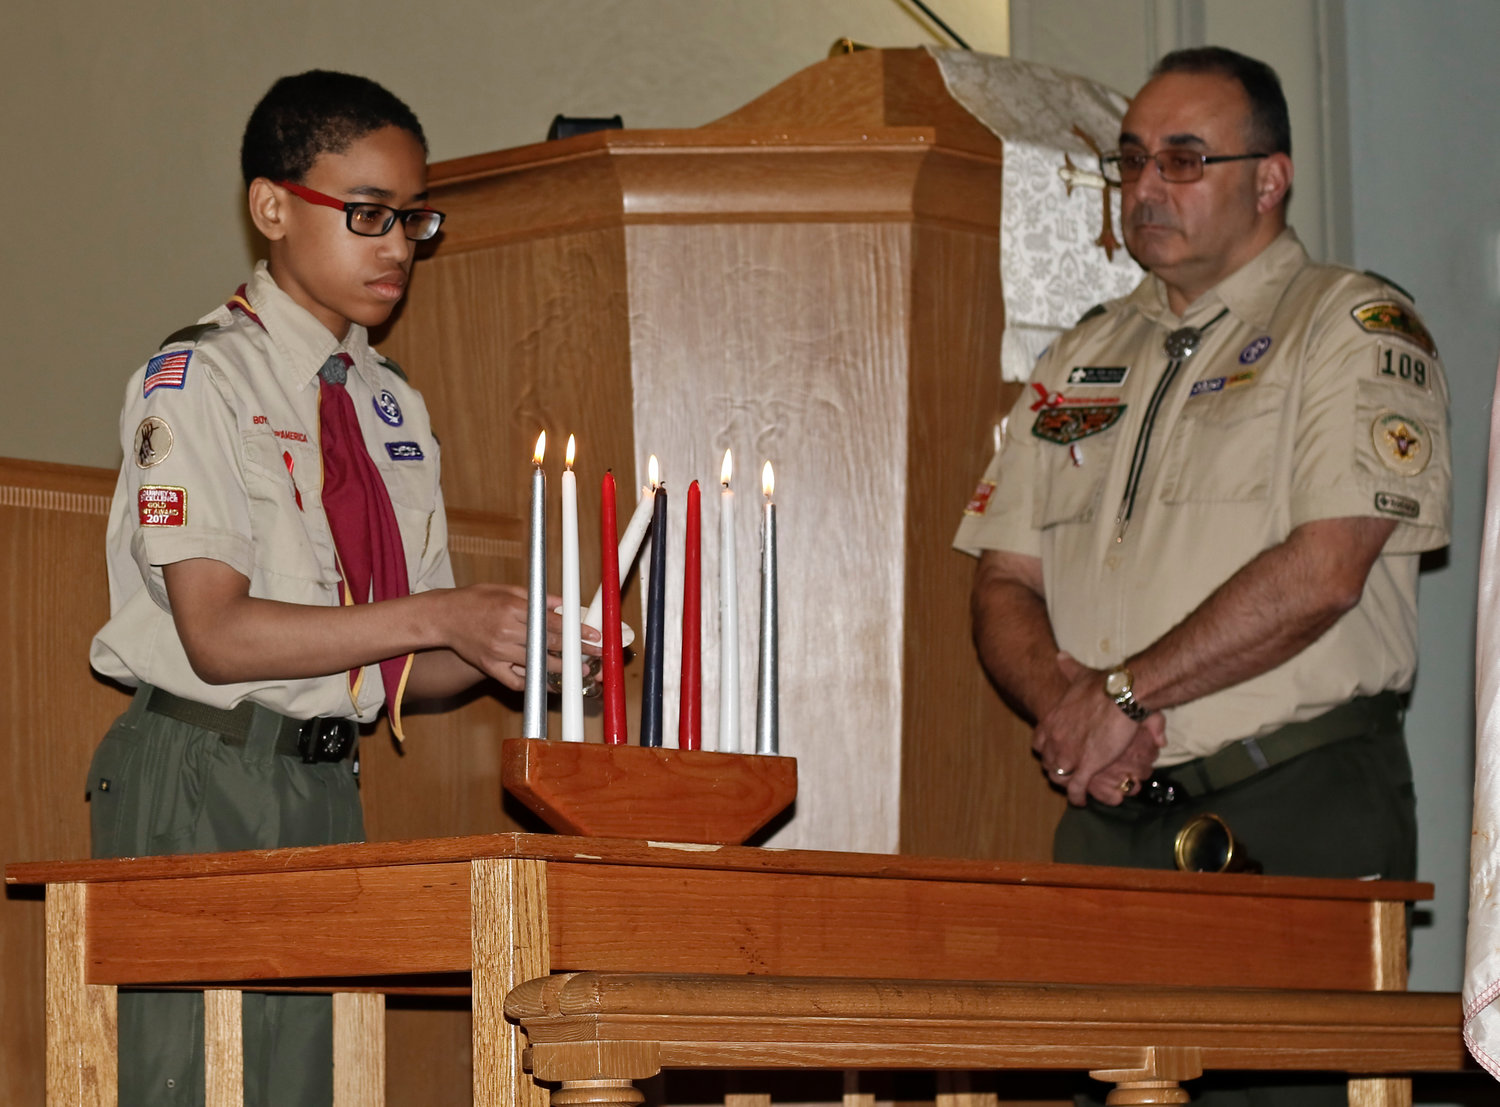 During a reading about the significance of the Eagle Badge, scout Shawn Redhead lit the red candles.